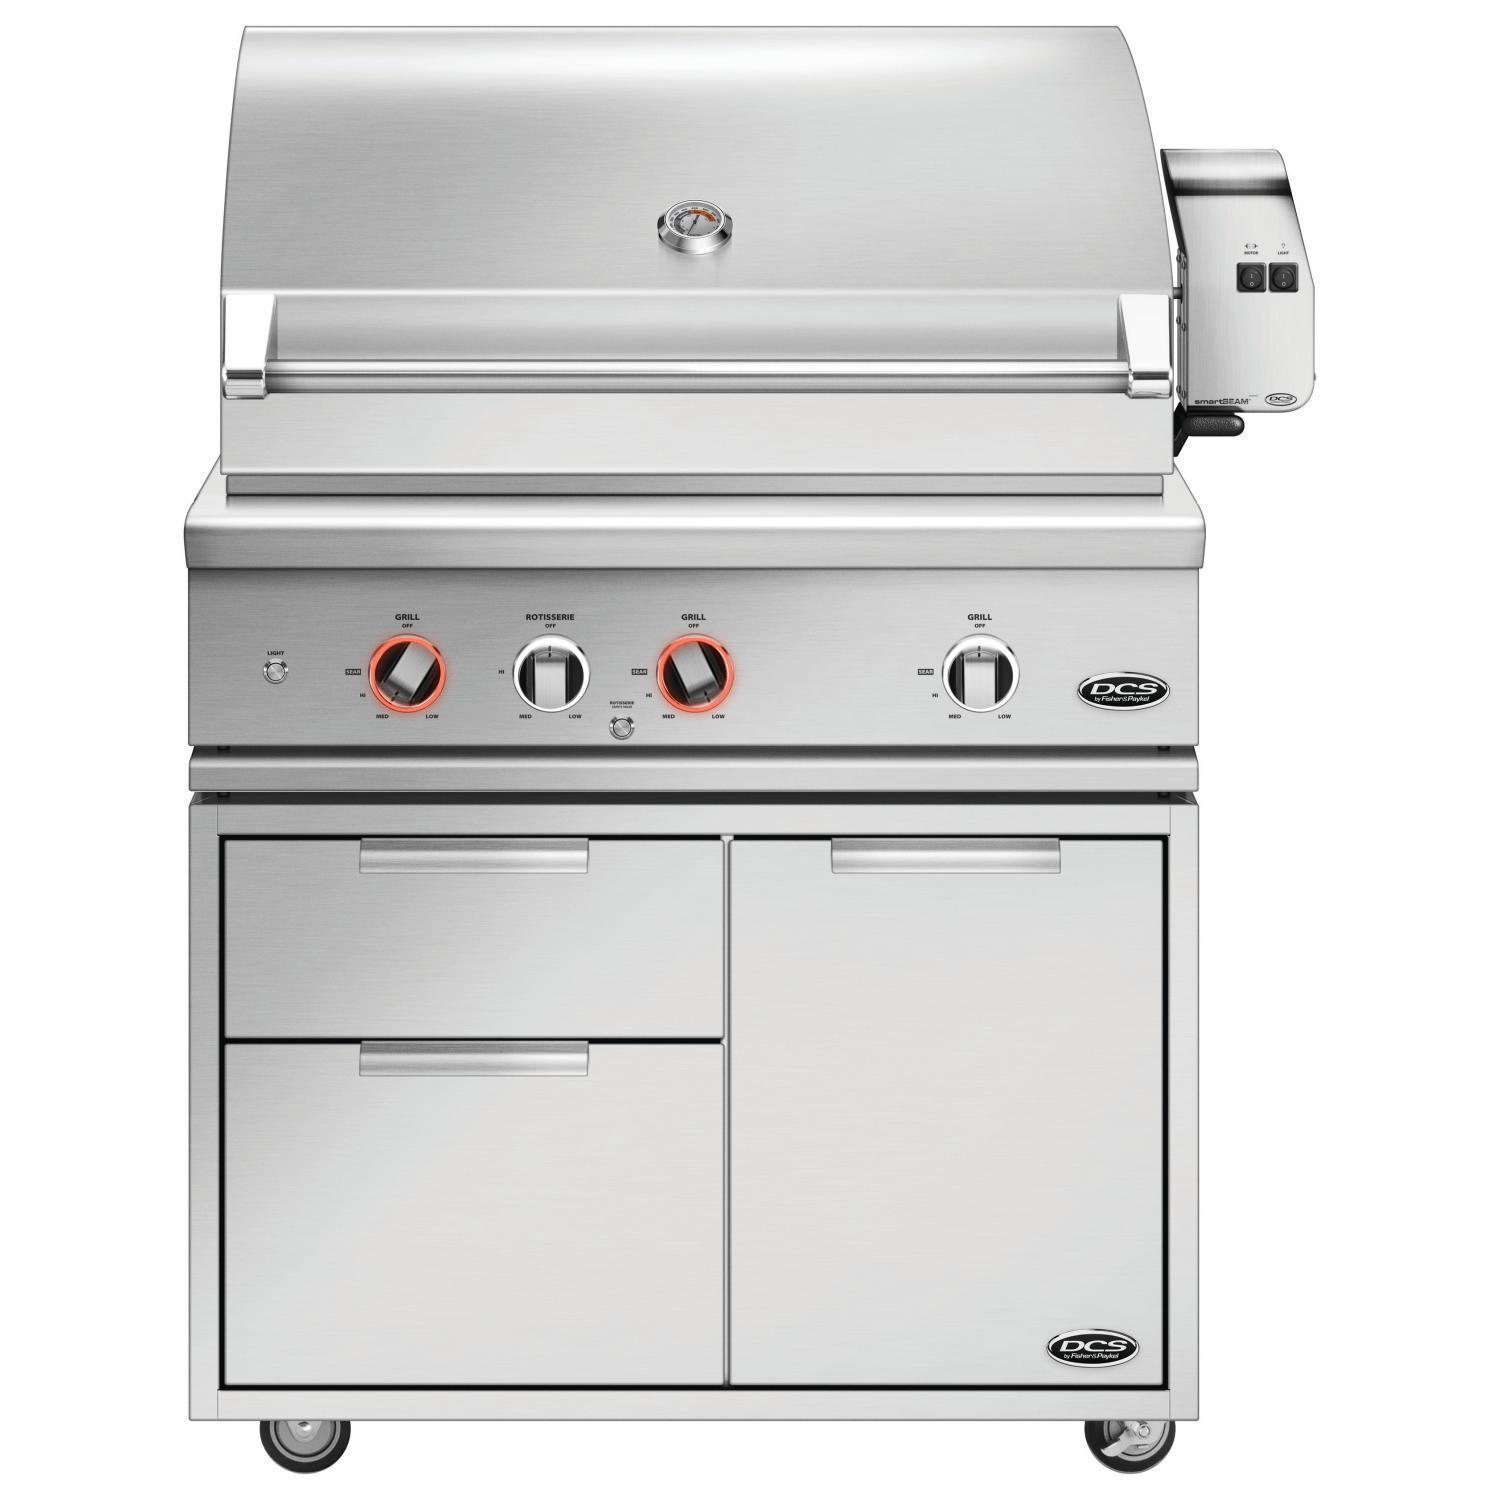 DCS Series 9 Evolution 36 Natural Gas Grill With Rotisserie - BE1-36RC-N + CAD1-36E